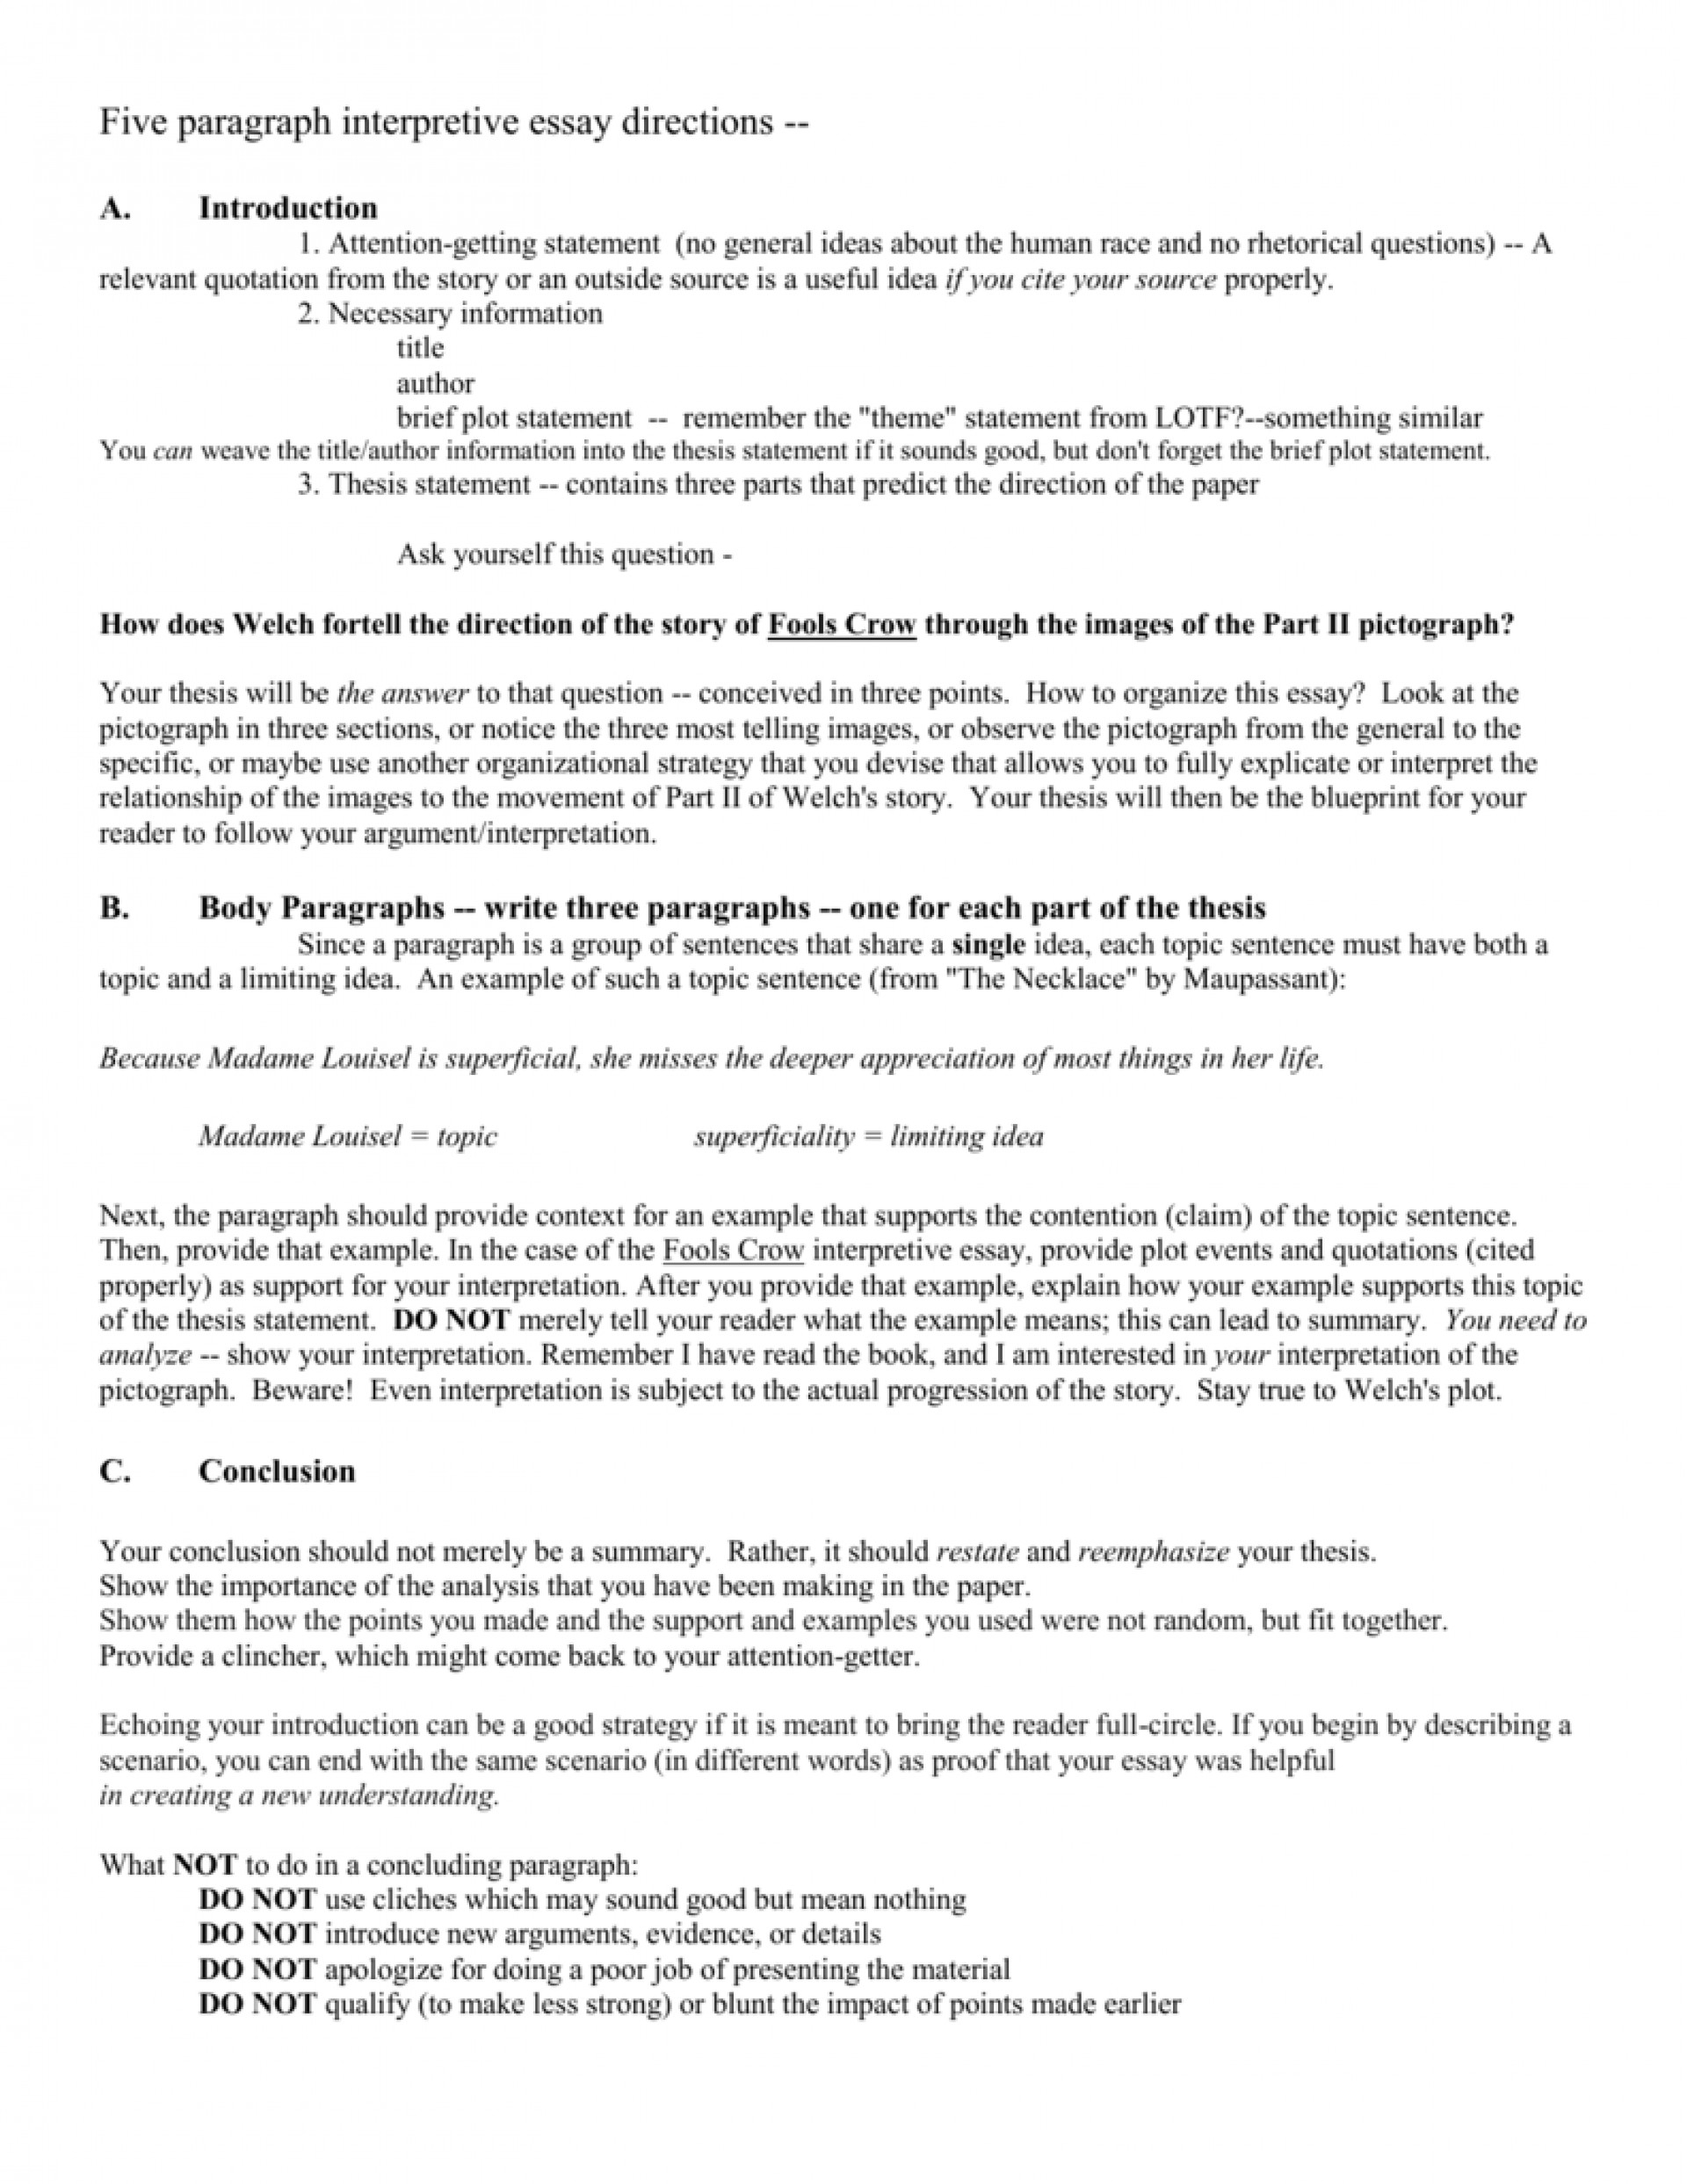 001 Interpretive Essay Example 008042384 1 Outstanding Sample Thesis Statement Writing Prompts 1920